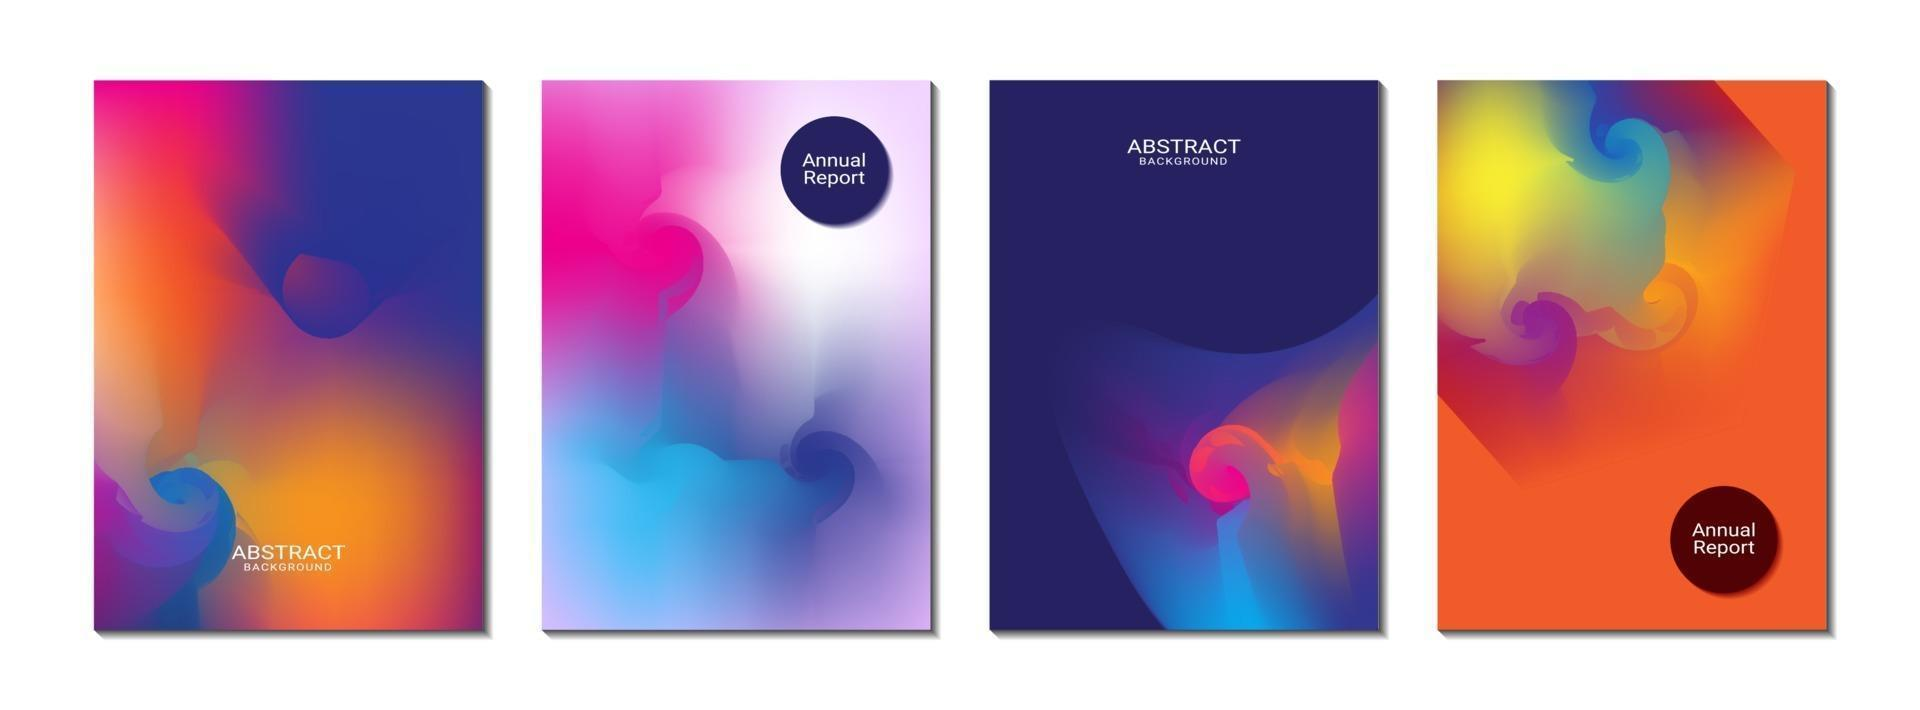 Cover page abstract background full colour for annual report cover banner leaflet template design vector